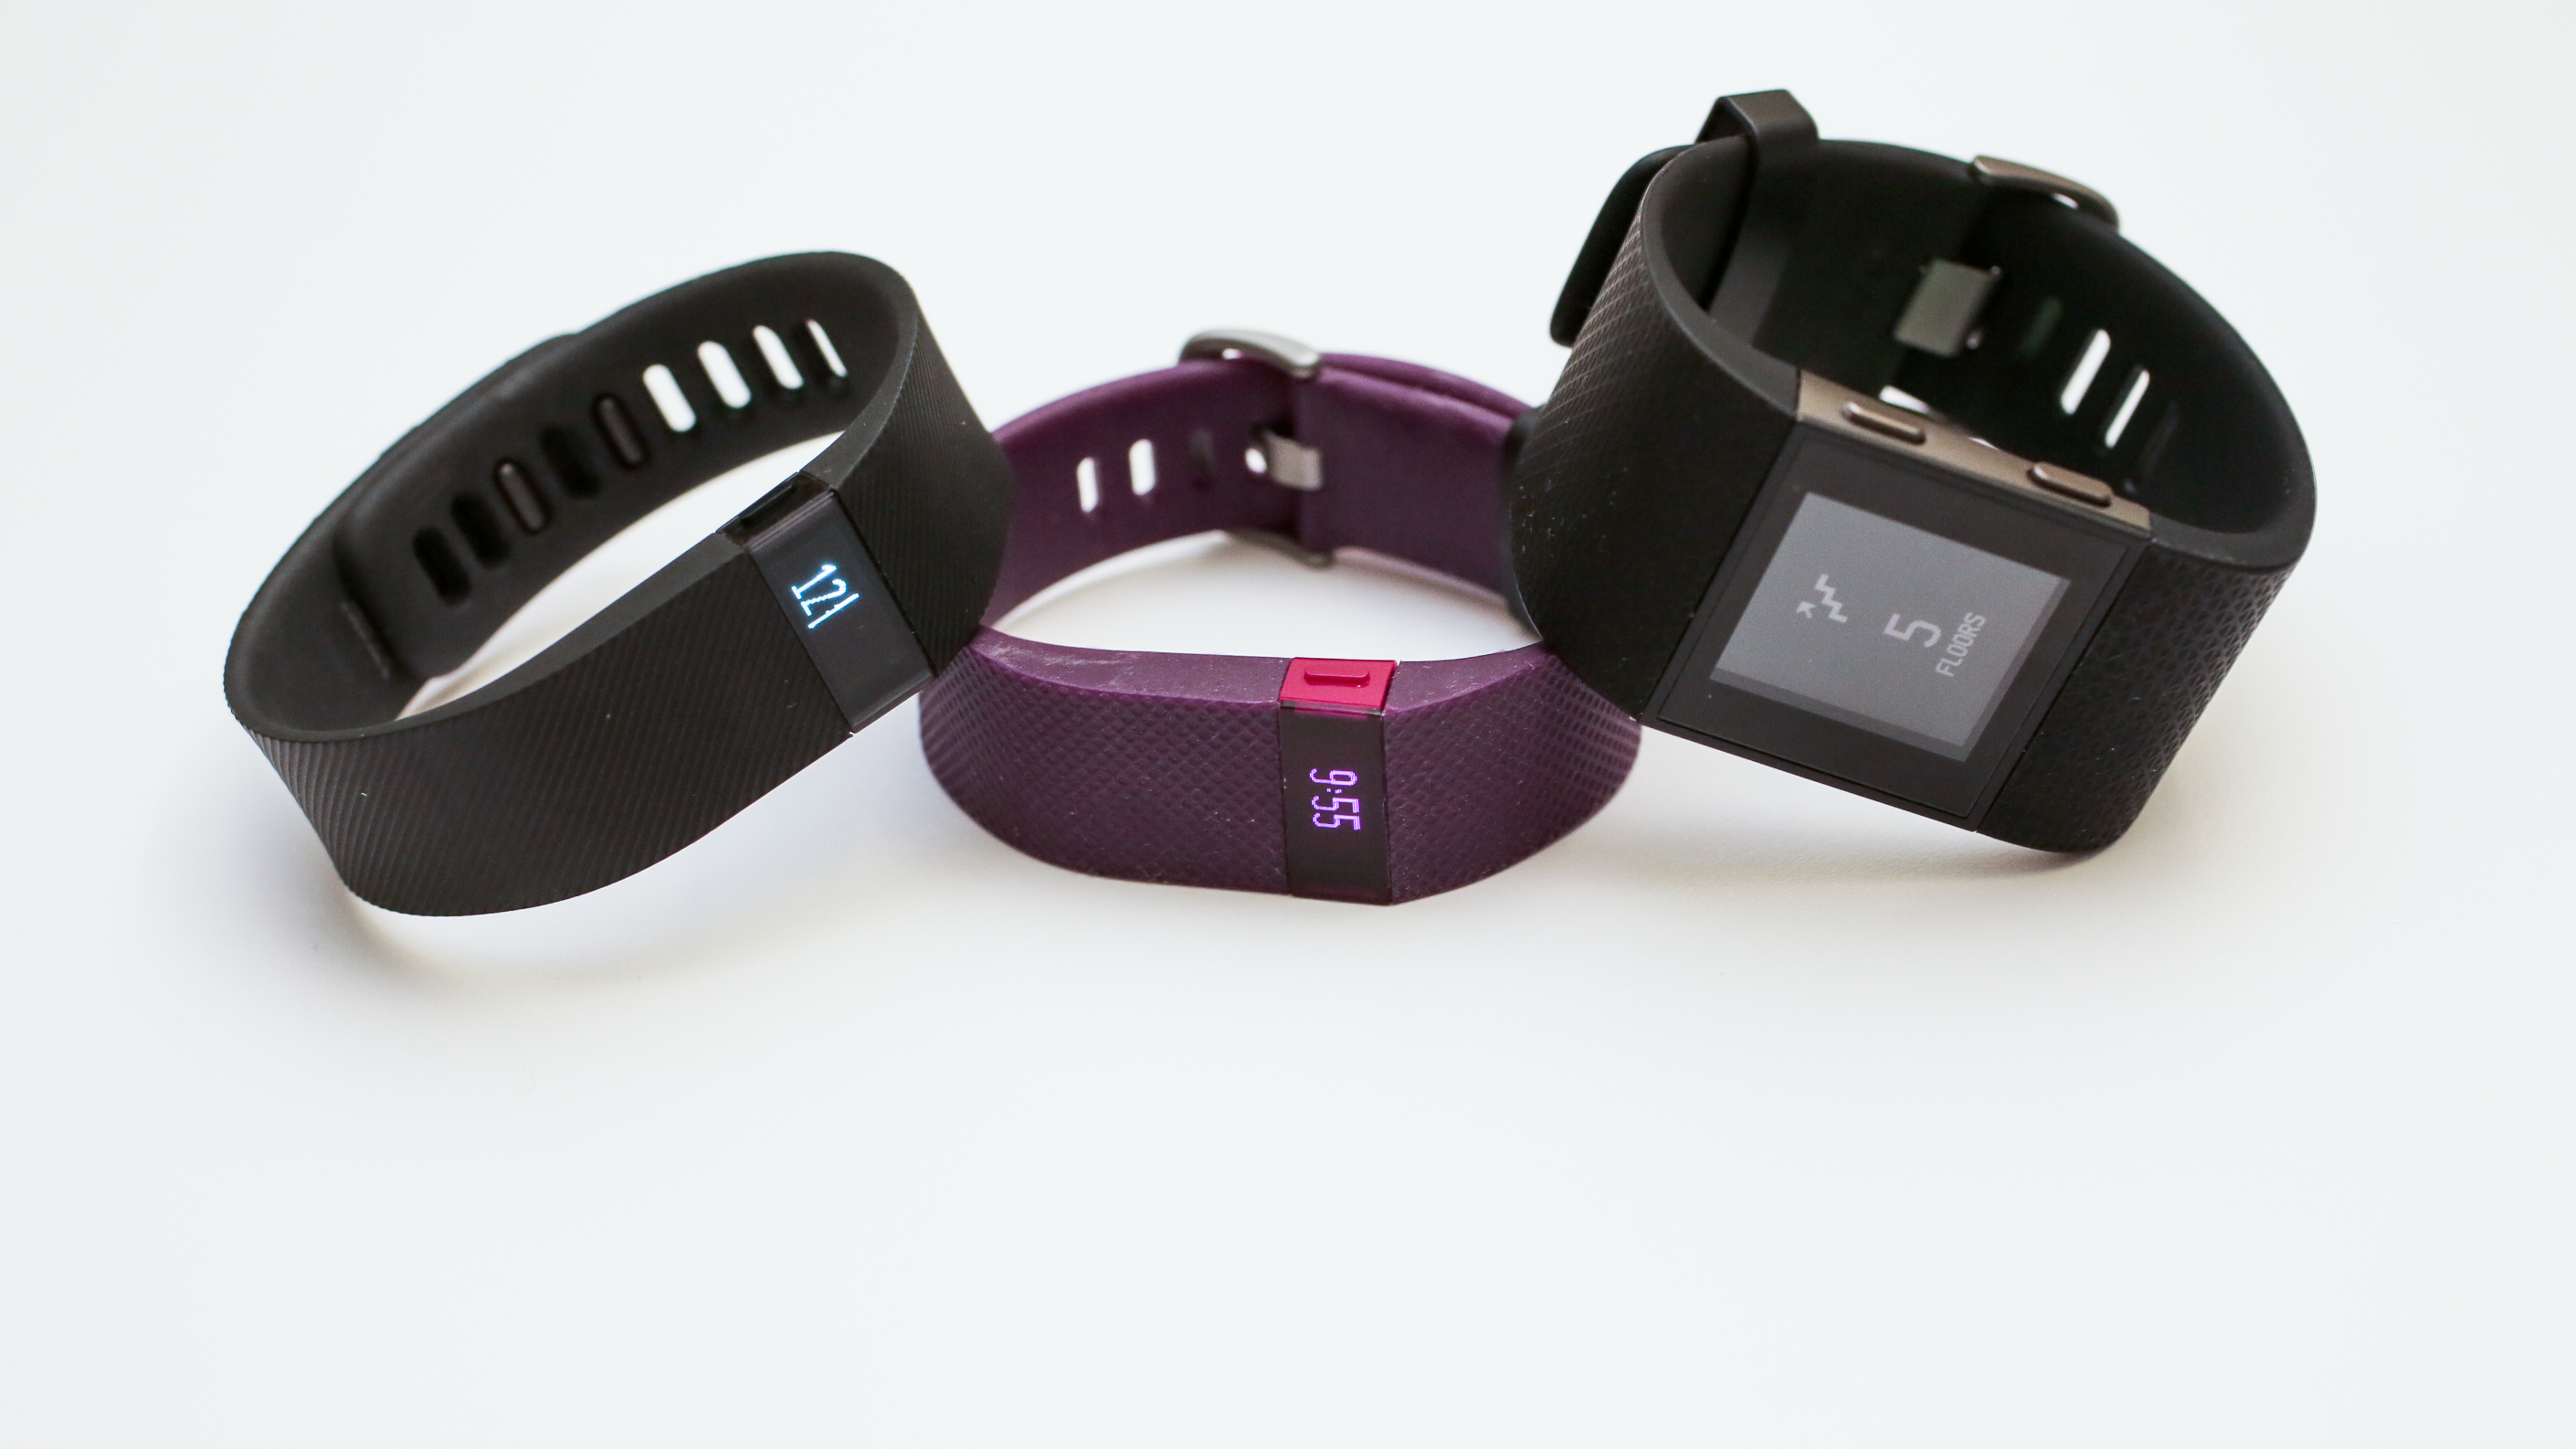 fitbit-charge-hr-surge-product-photos52.jpg